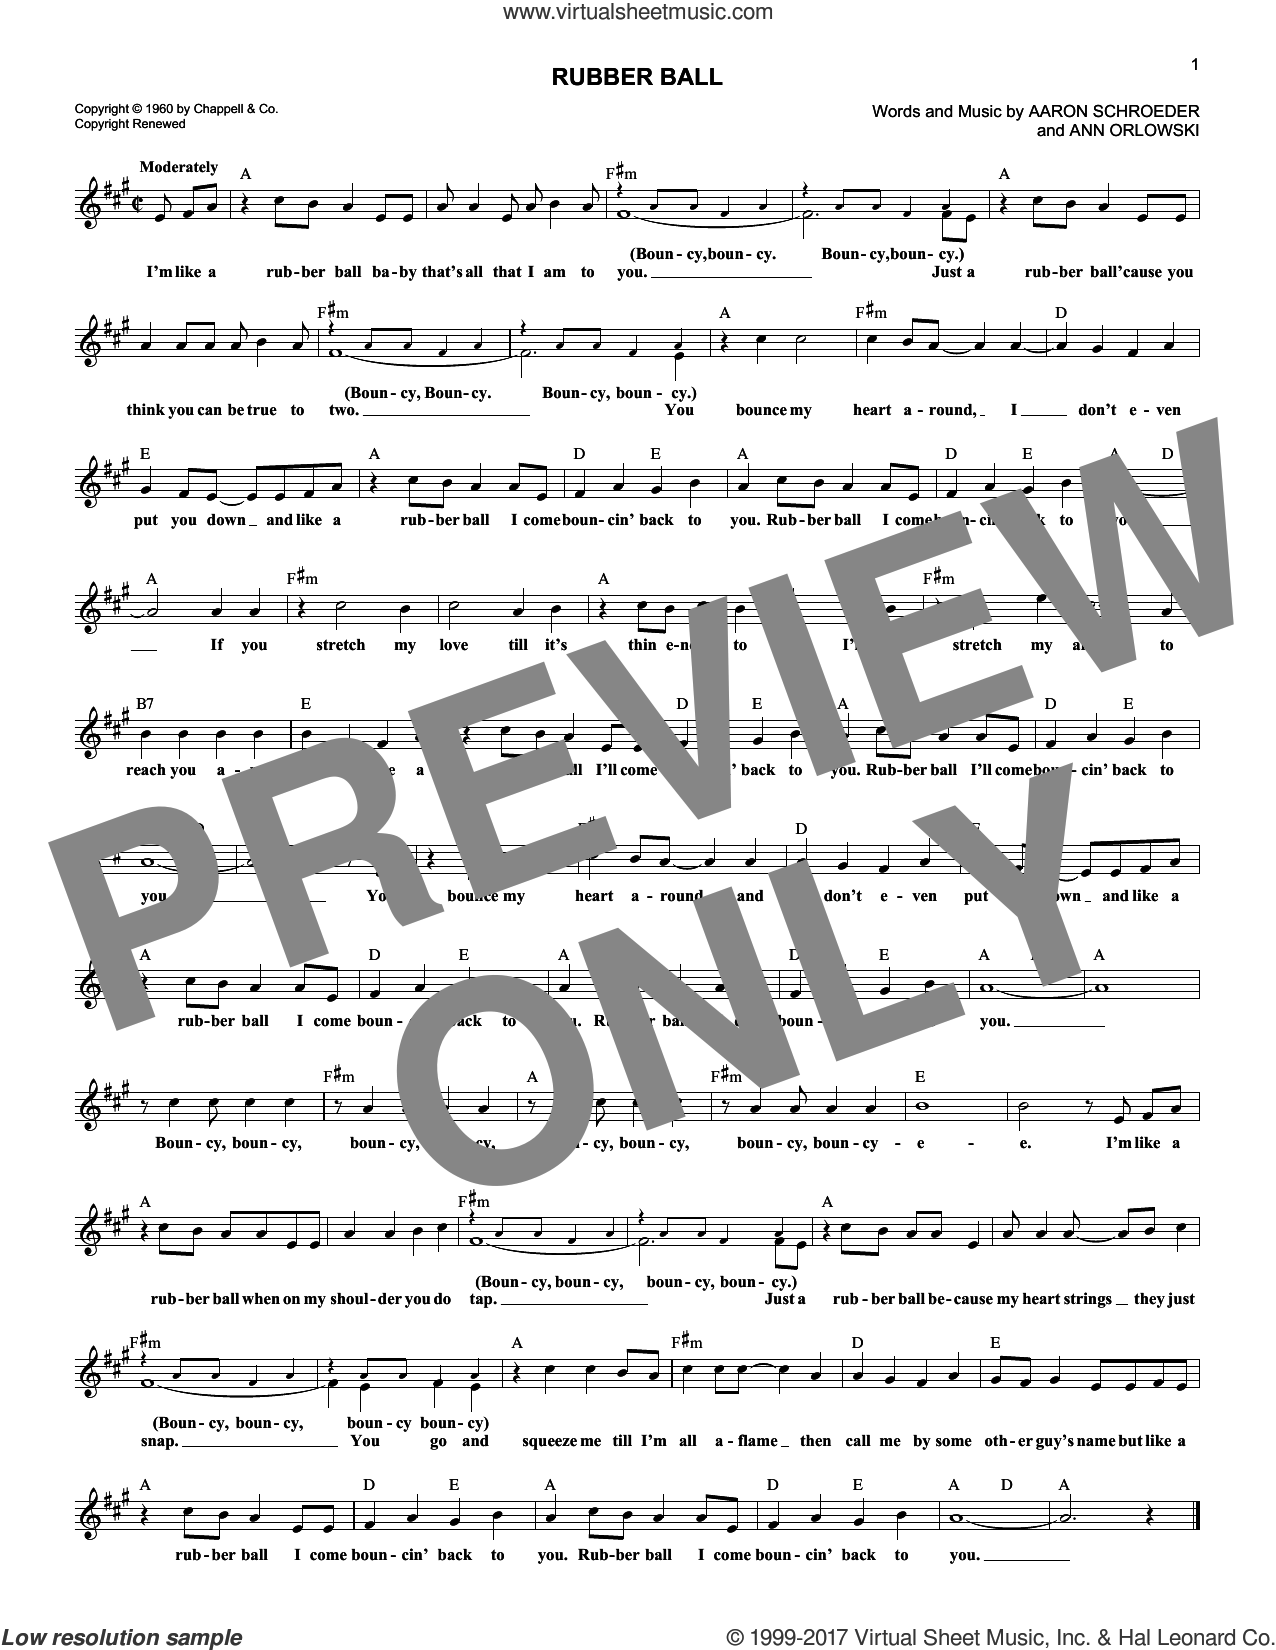 Rubber Ball sheet music for voice and other instruments (fake book) by Bobby Vee, Aaron Schroeder and Ann Orlowski, intermediate skill level